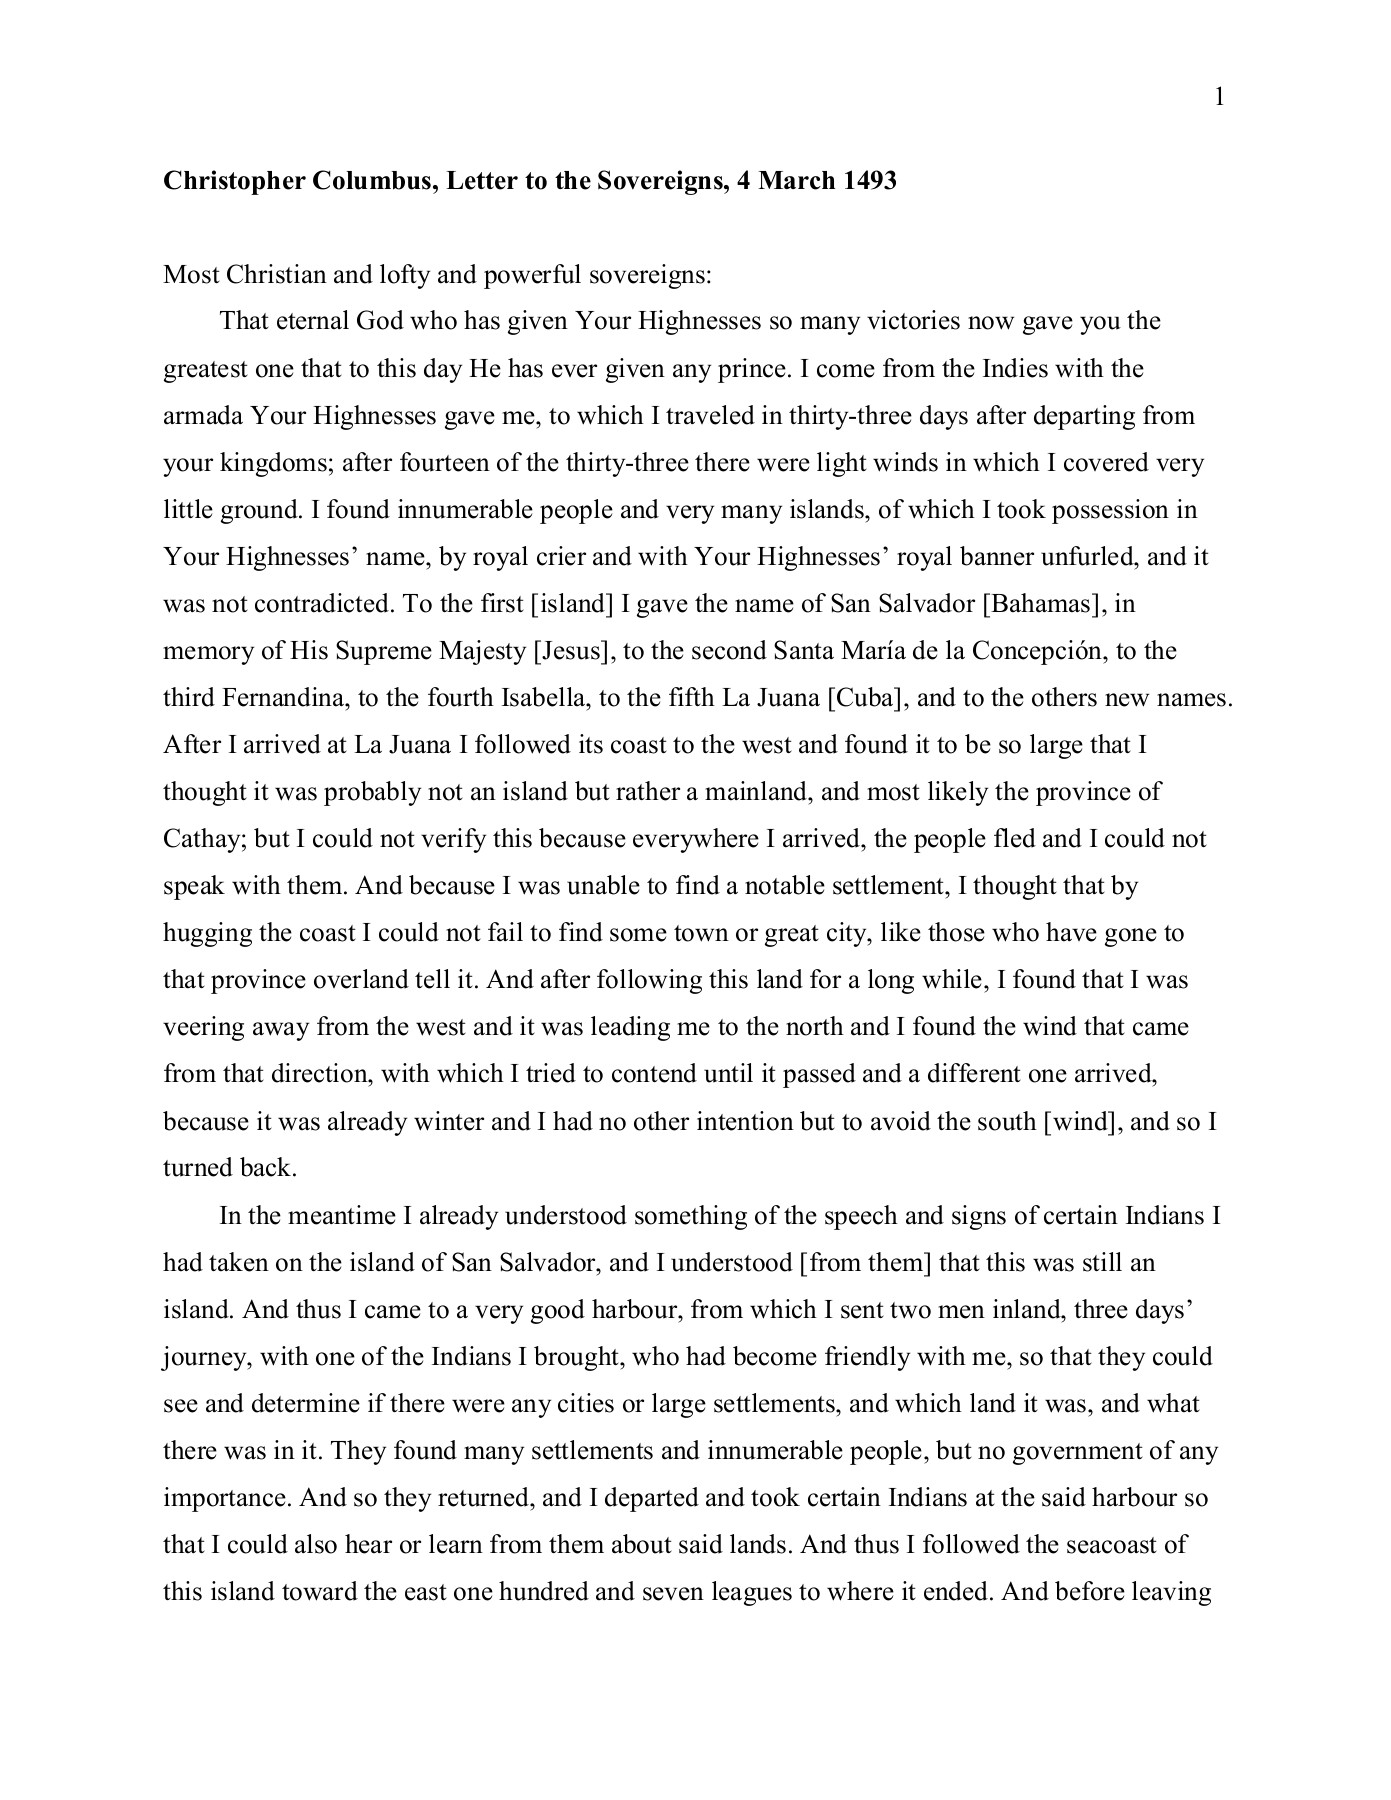 christopher columbus letter to the sovereigns 4 march 1493